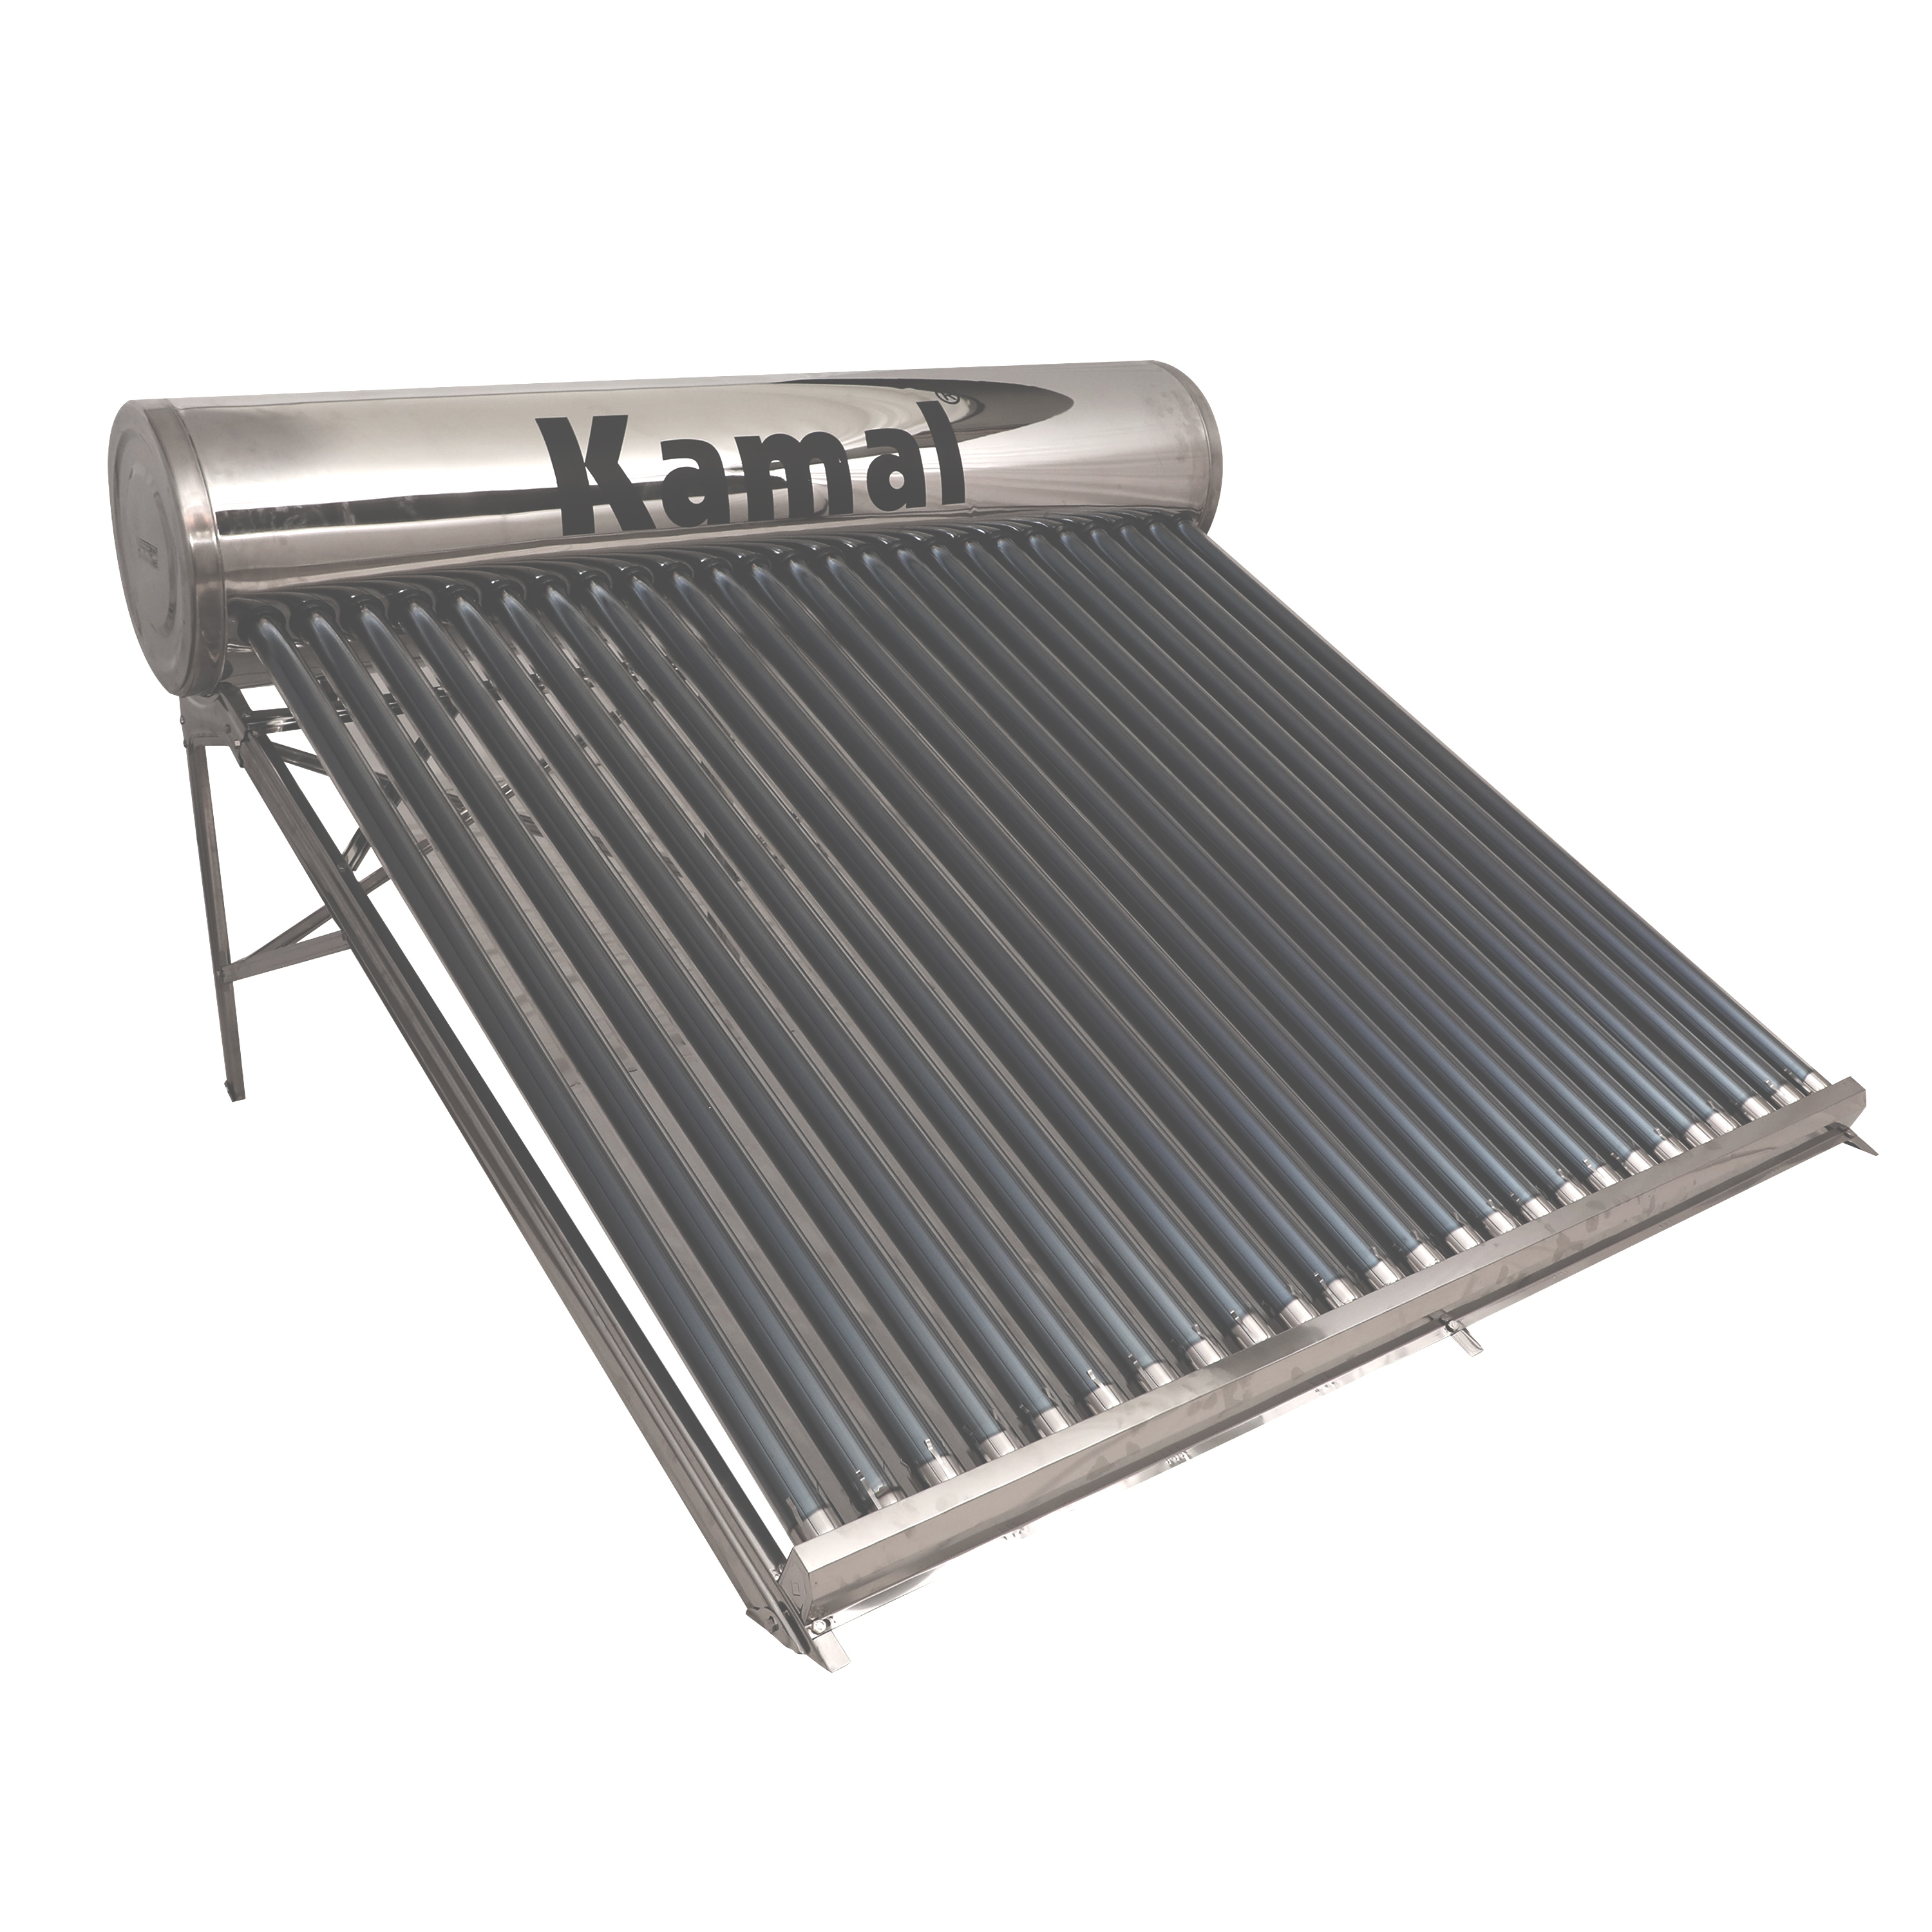 250LPD ETC Outer SS (Airvent) Solar Water Heater